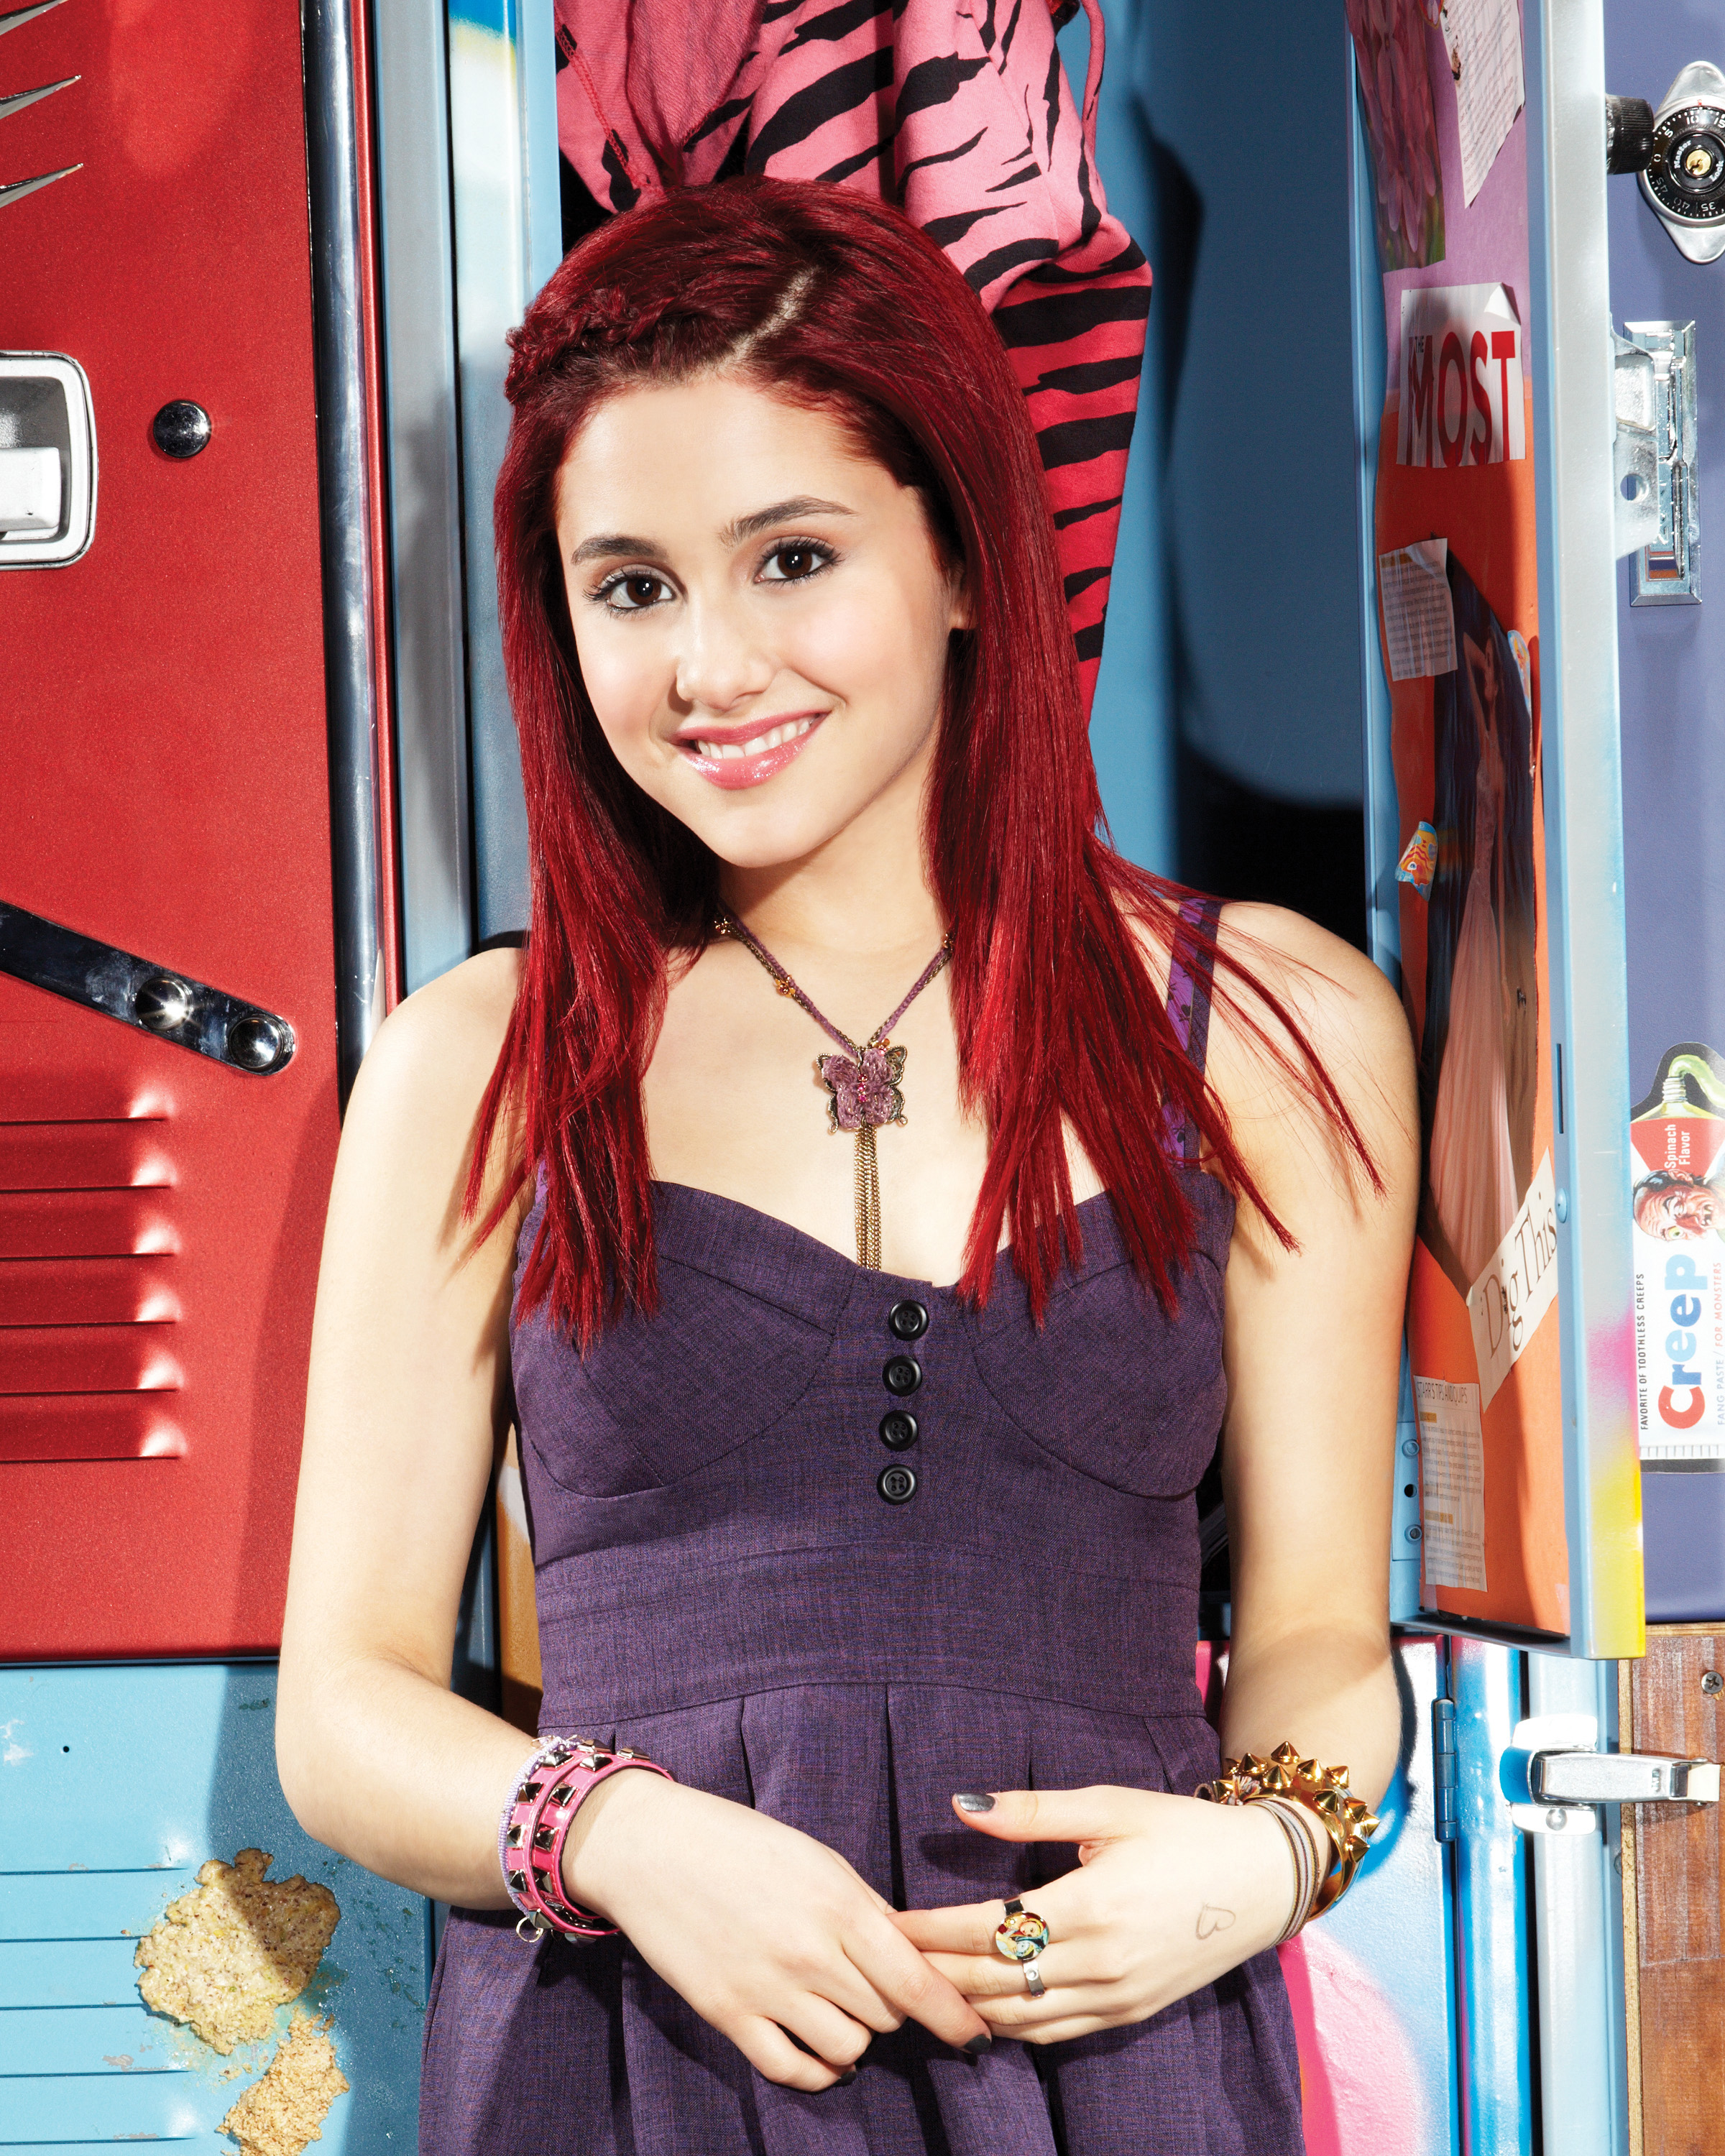 cat valentine | ariana grande wiki | fandom powered by wikia